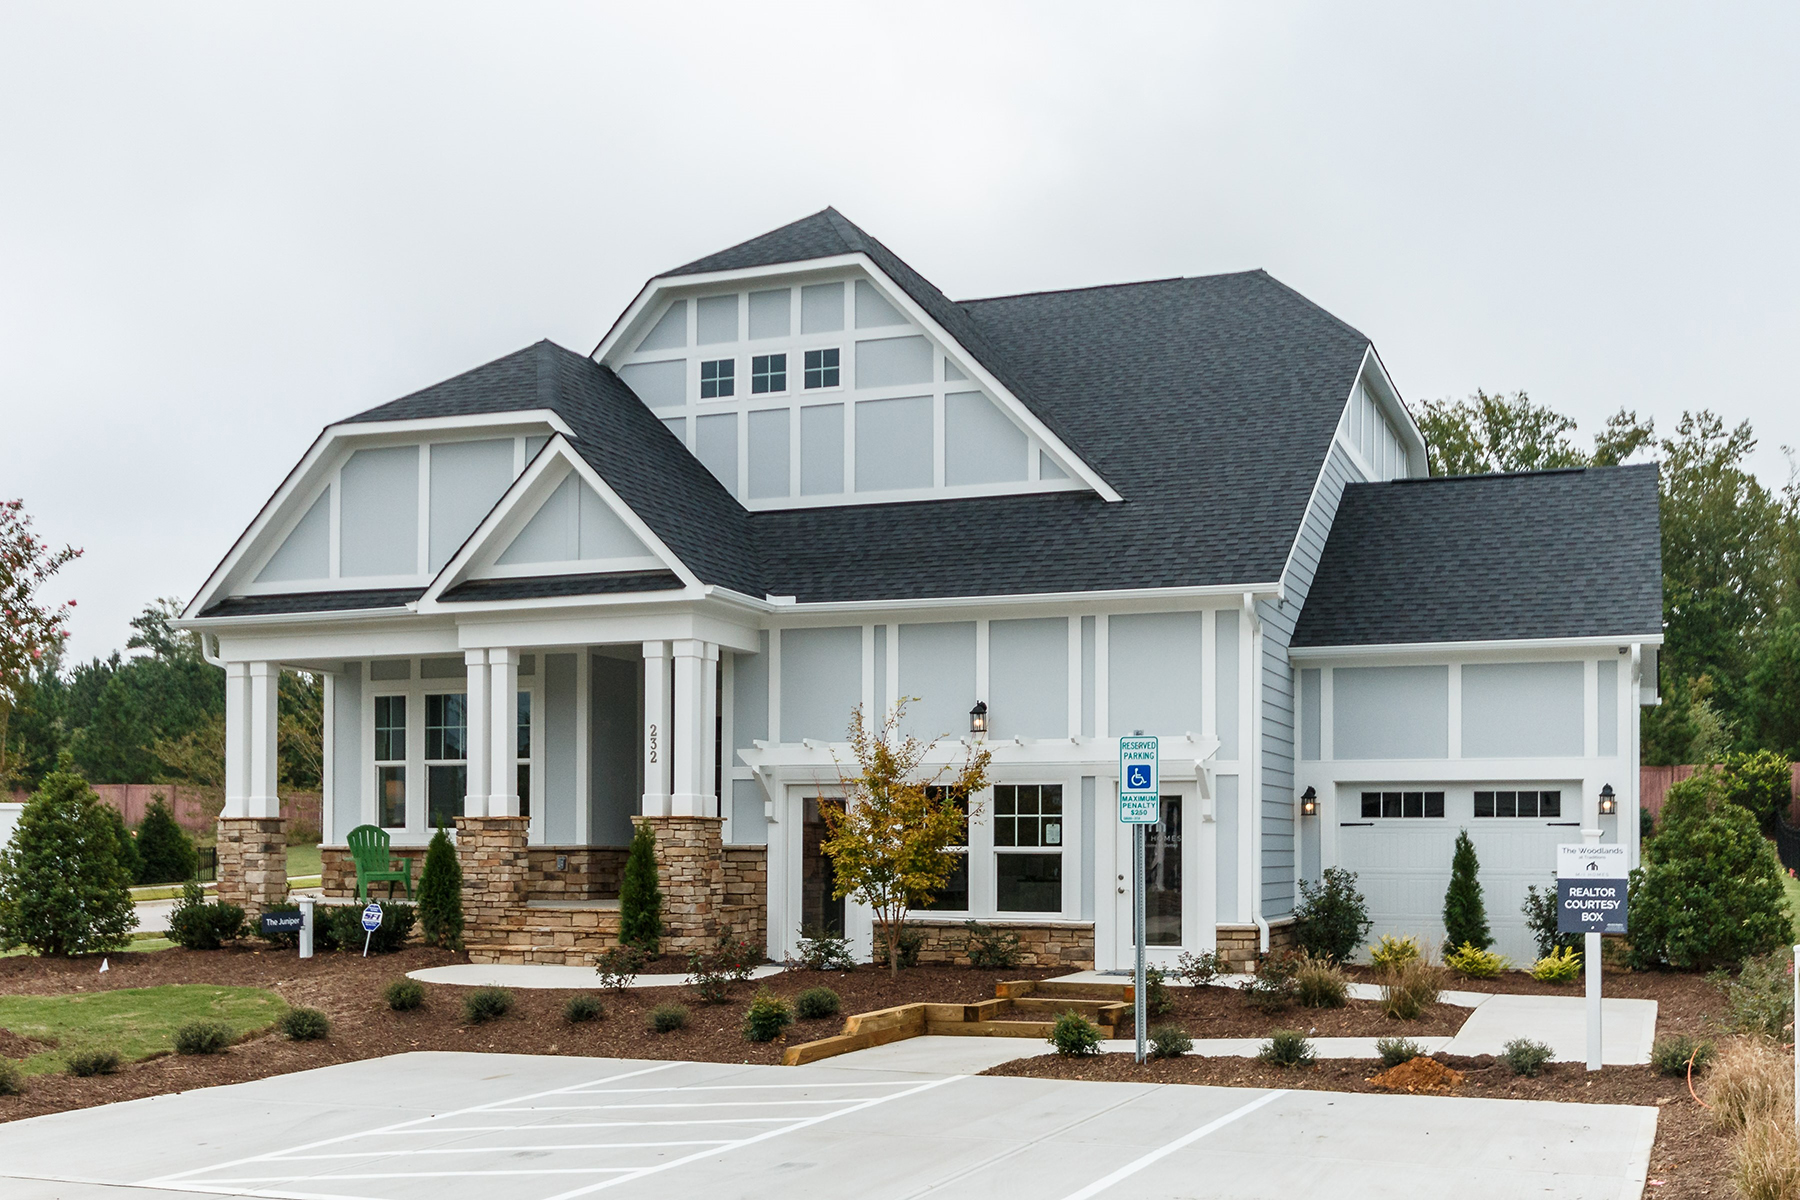 New Home in Wake Forest - The Juniper - M/I Homes